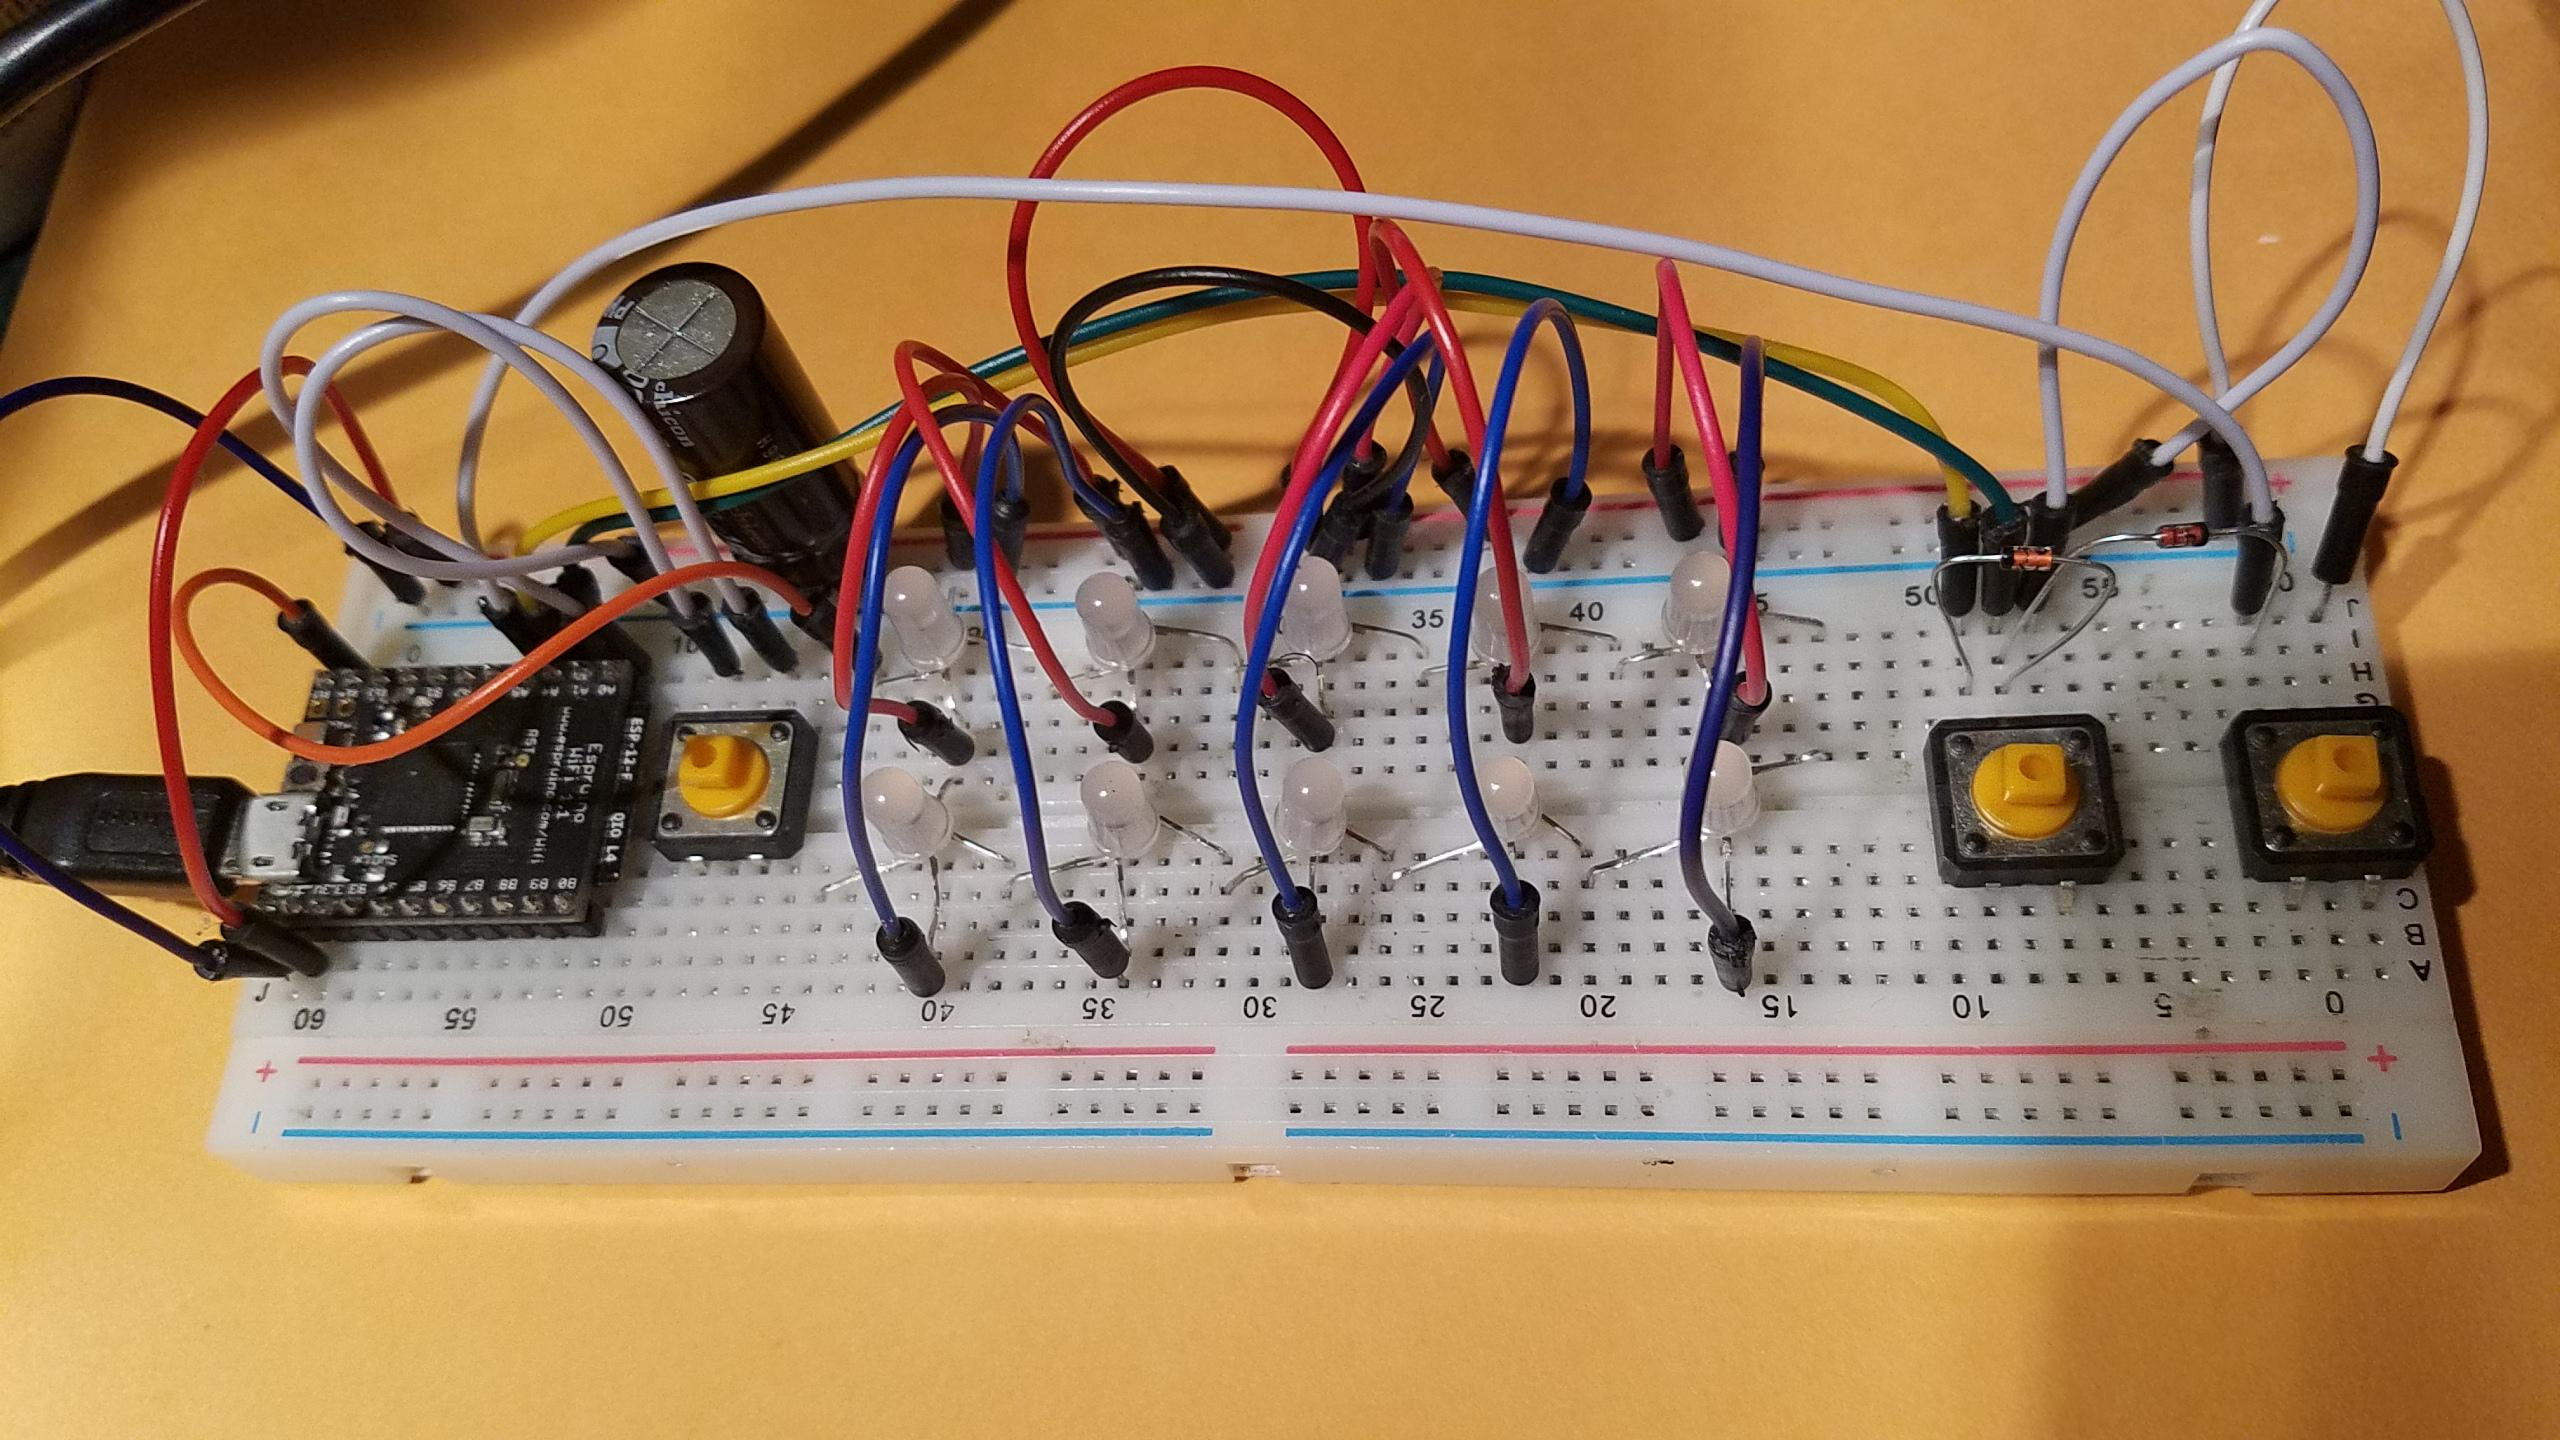 Retro Horse Derby Game Board with Neopixels showing Reaction Game